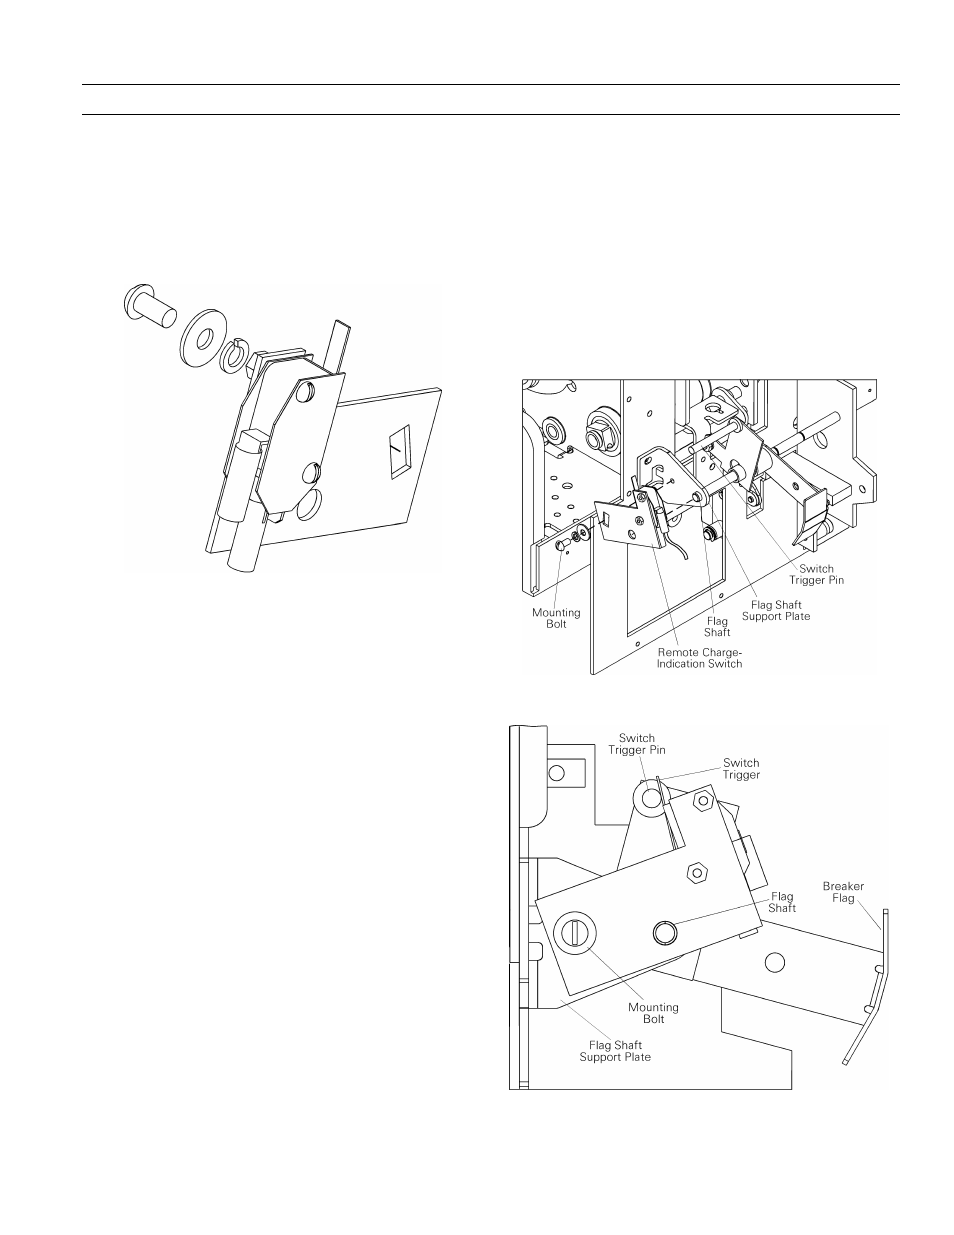 6 Remote Charge Indication Switch Ge Industrial Solutions Wiring Diagram Entelliguard 8002000 A Frames 240600 Vac Maintenance Manual User Page 57 64